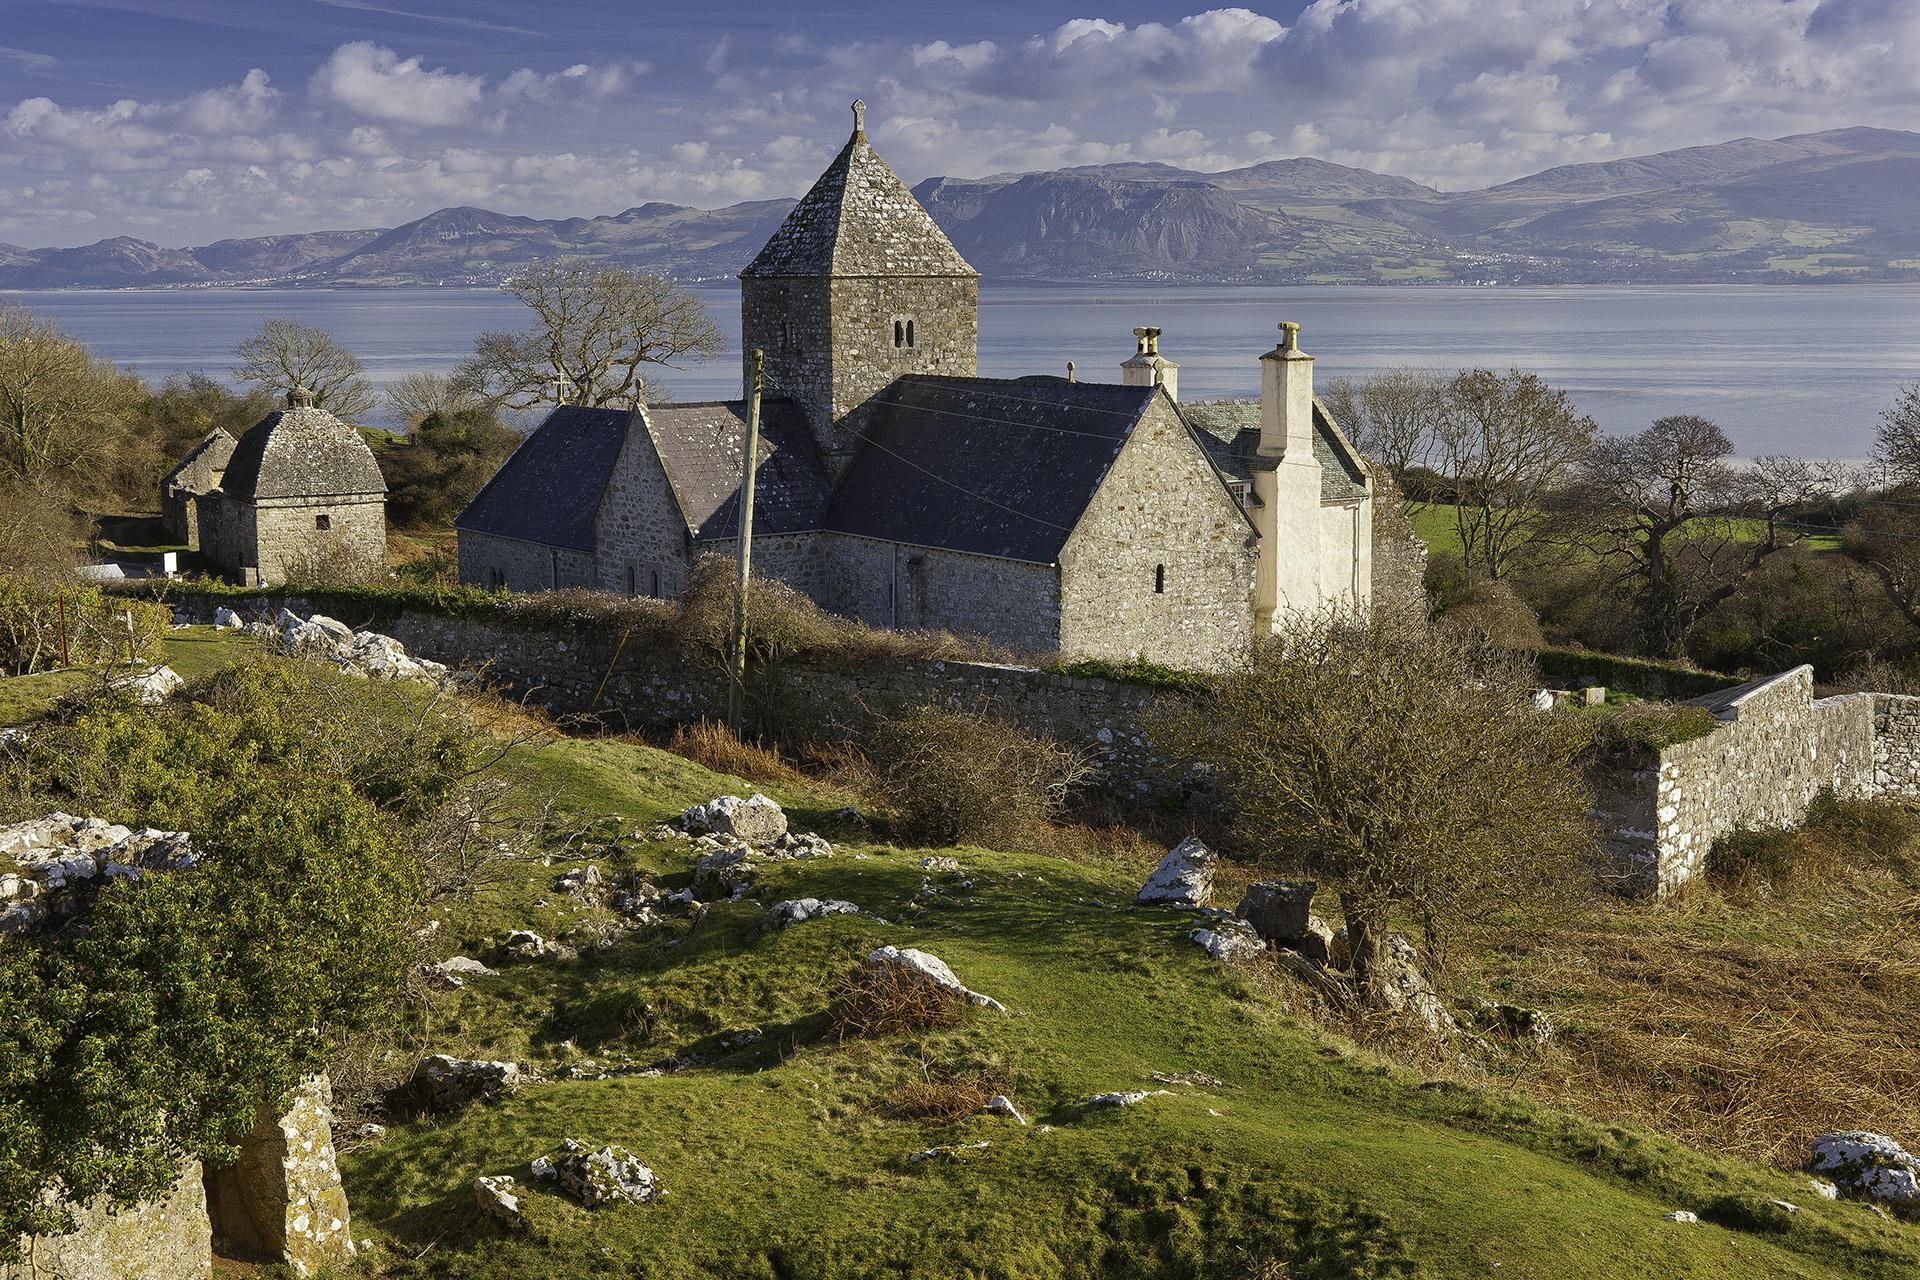 Priordy Penmon/Penmon Priory